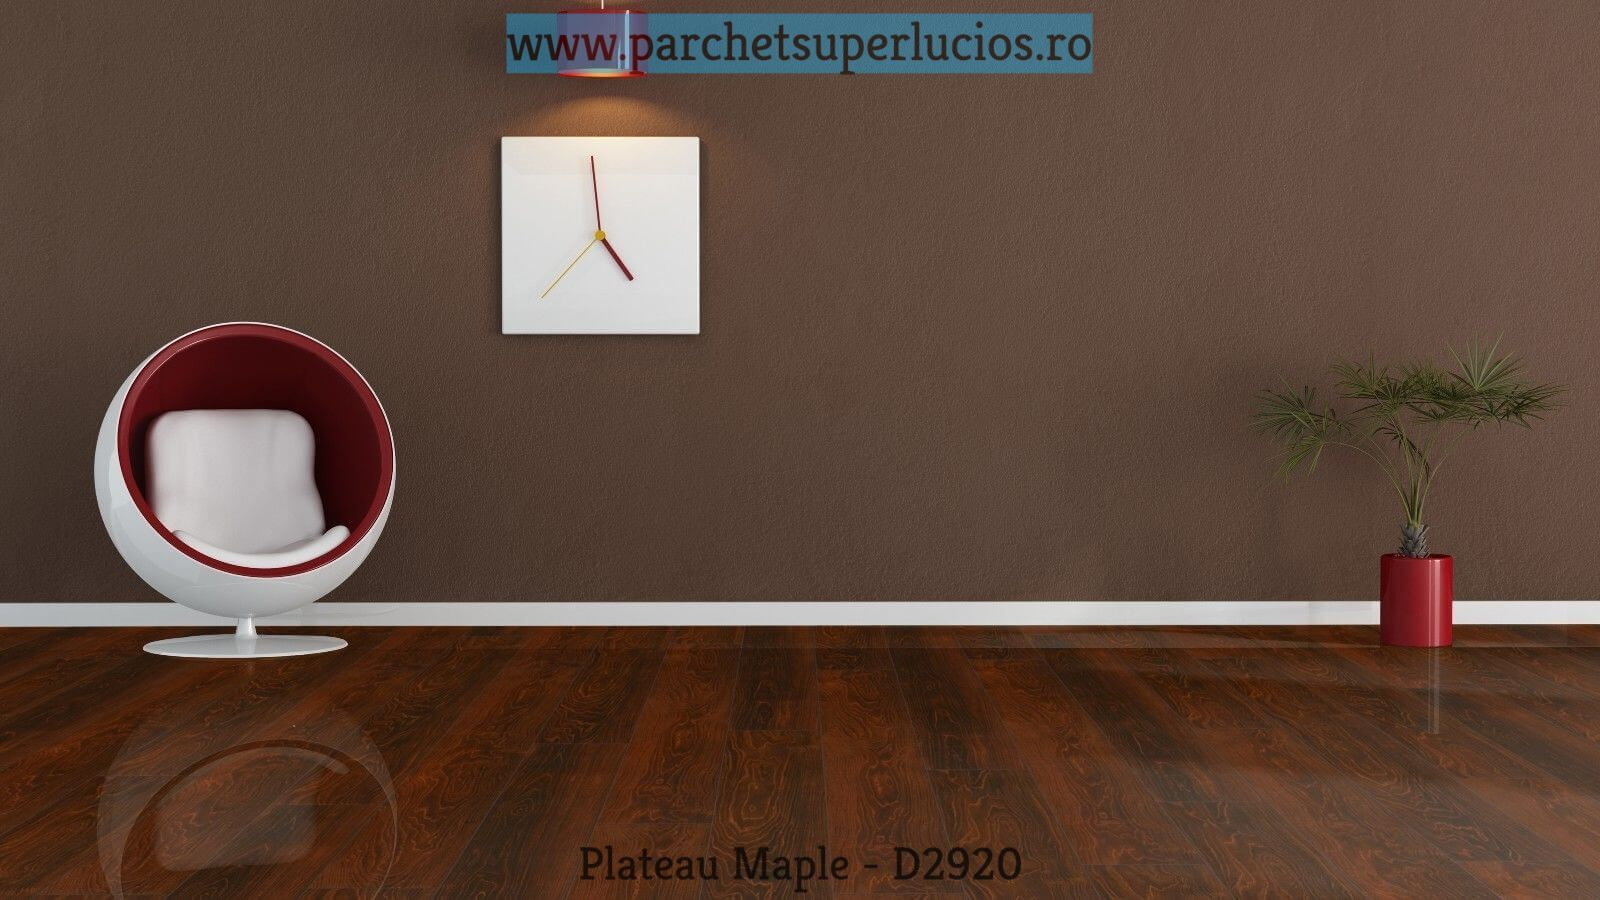 Parchet Lucios PLATEAU MAPLE D2920 - www.parchetsuperlucios.ro 10